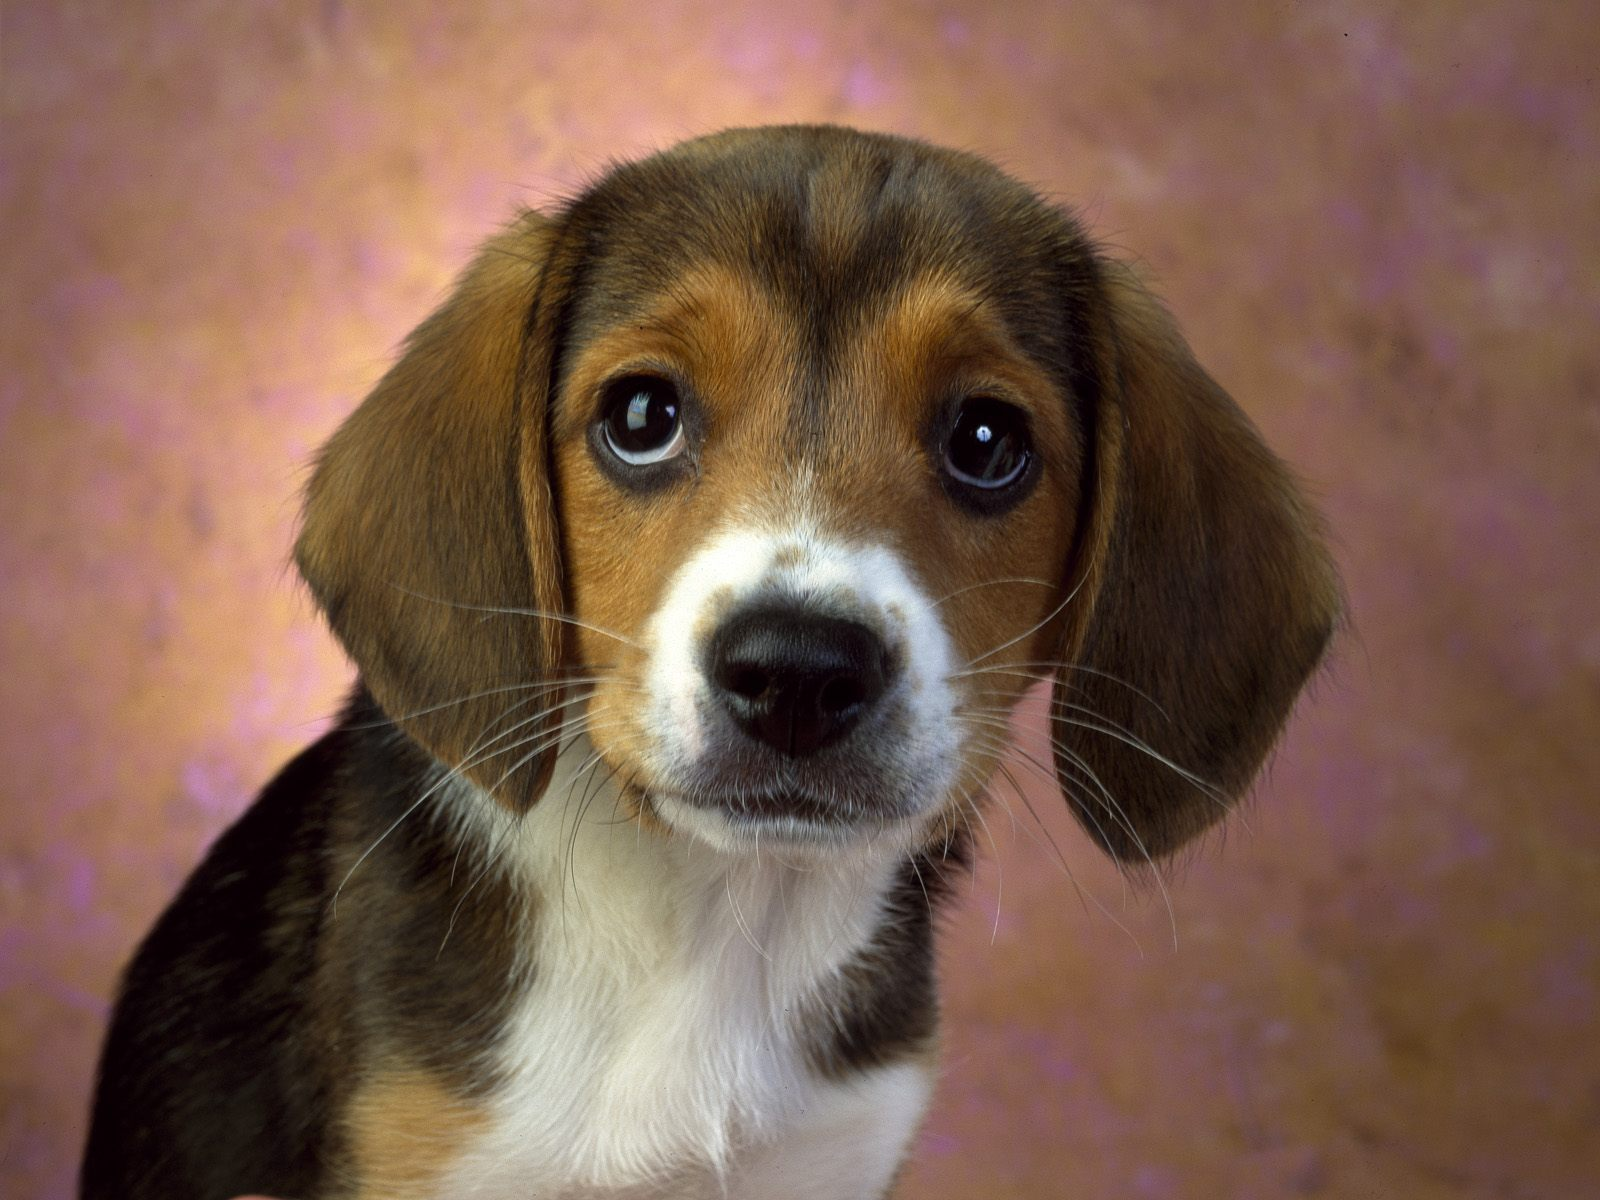 Beagle puppy dog :) - Hound Dogs Wallpaper (15363092) - Fanpop